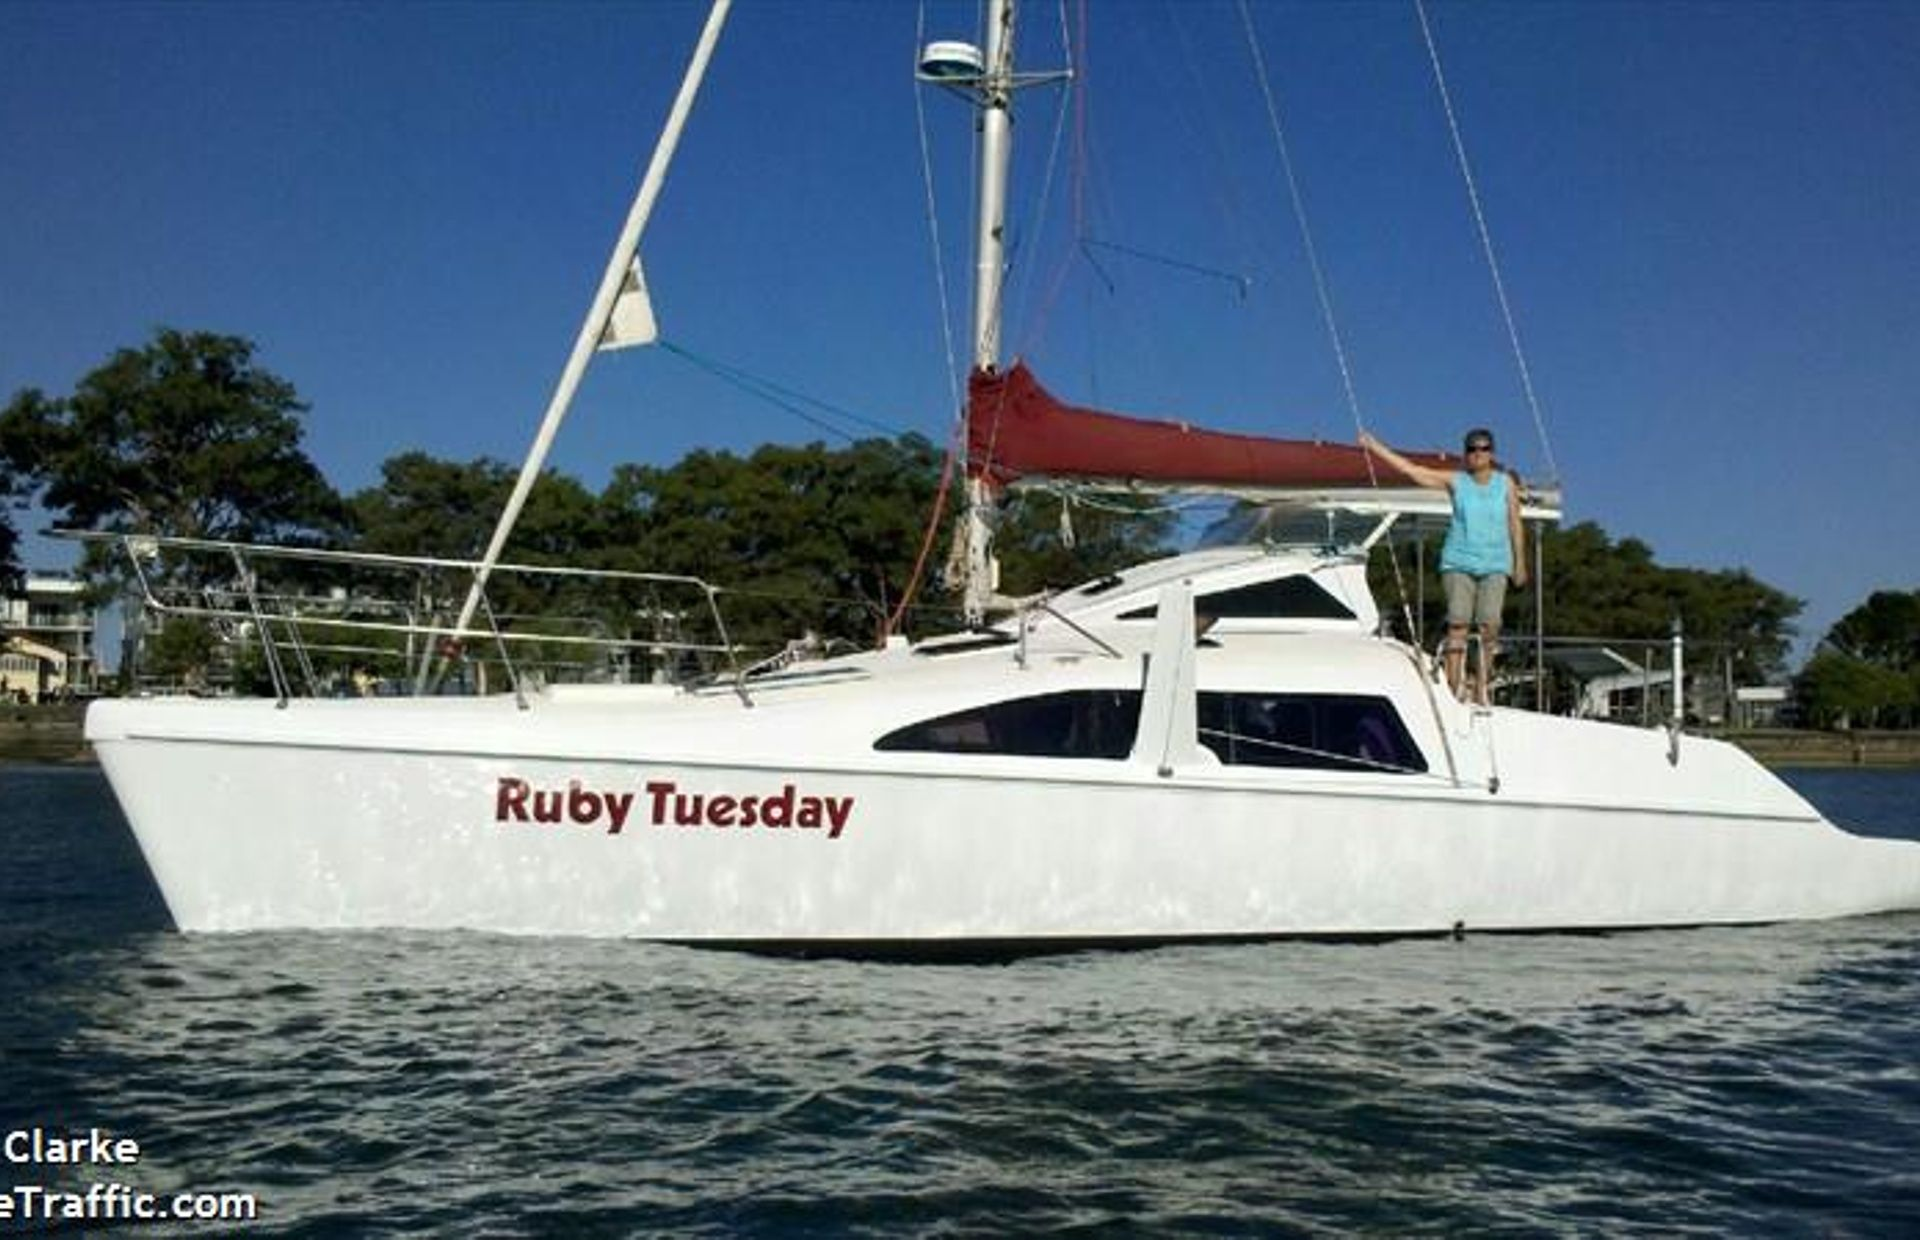 https://media.insailing.com/boat/ruby-tuesday/image_1574080490513.jpg